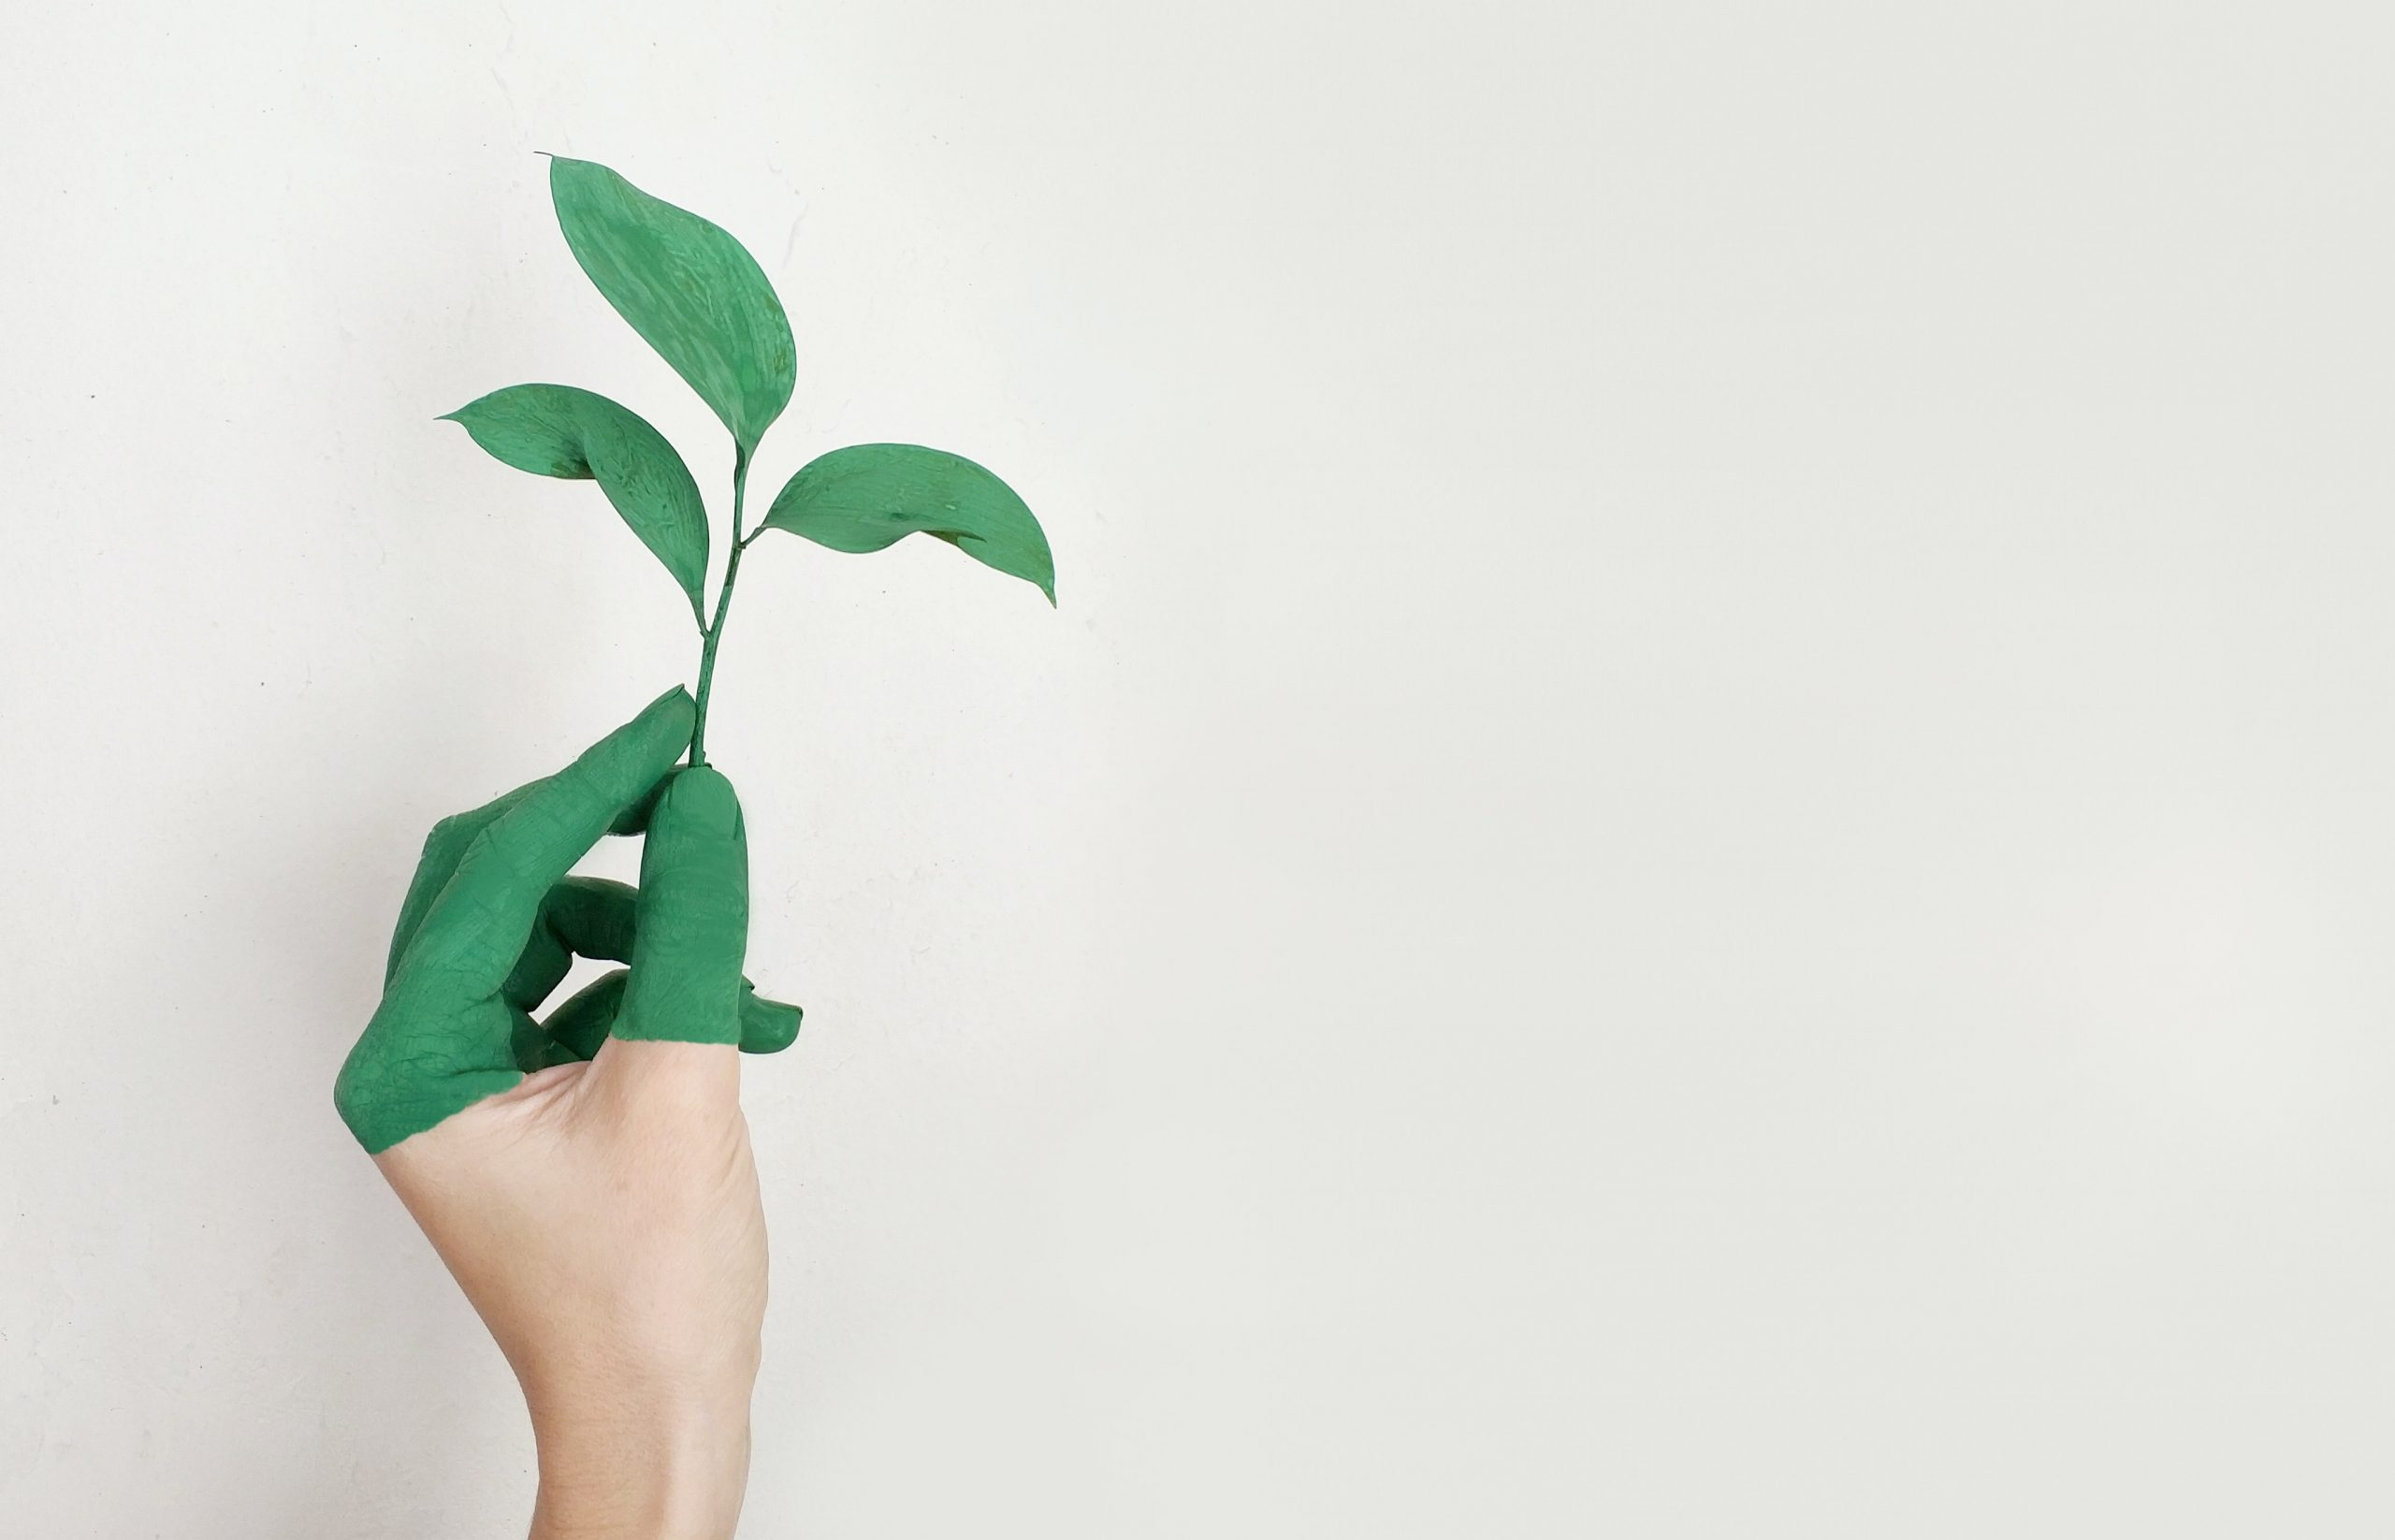 The Eco Team : Globally Sustainable